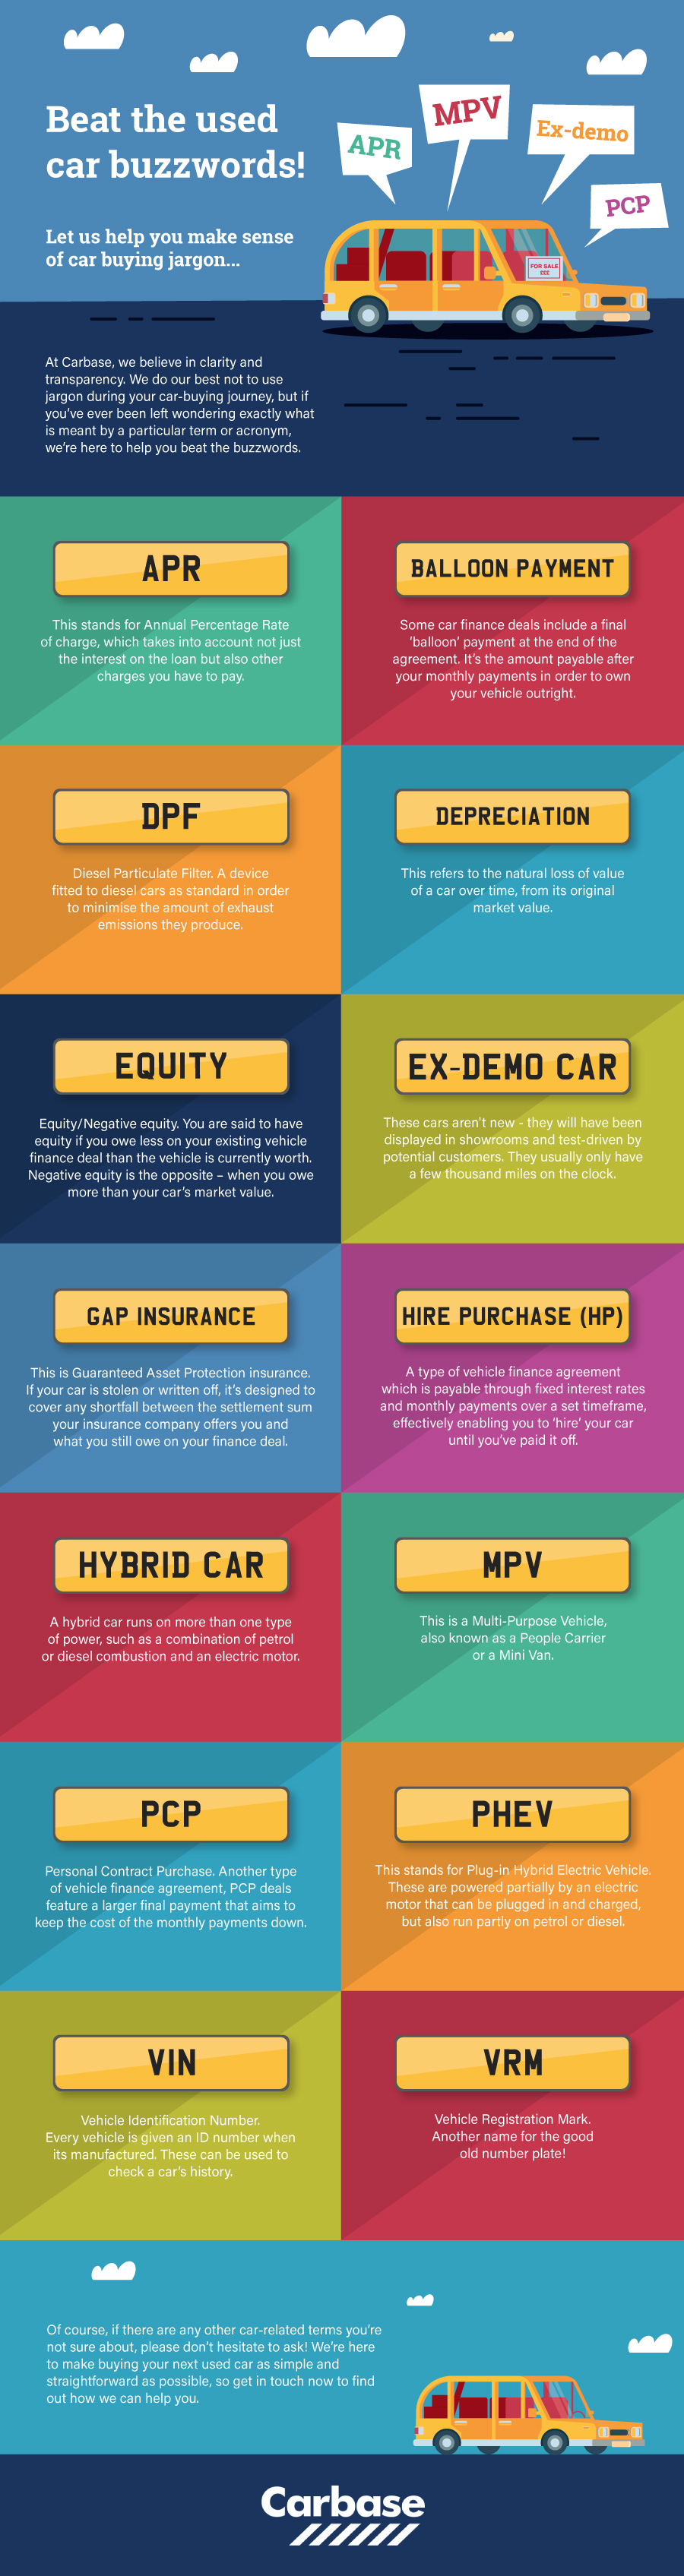 Used car buzzword and lingo guide